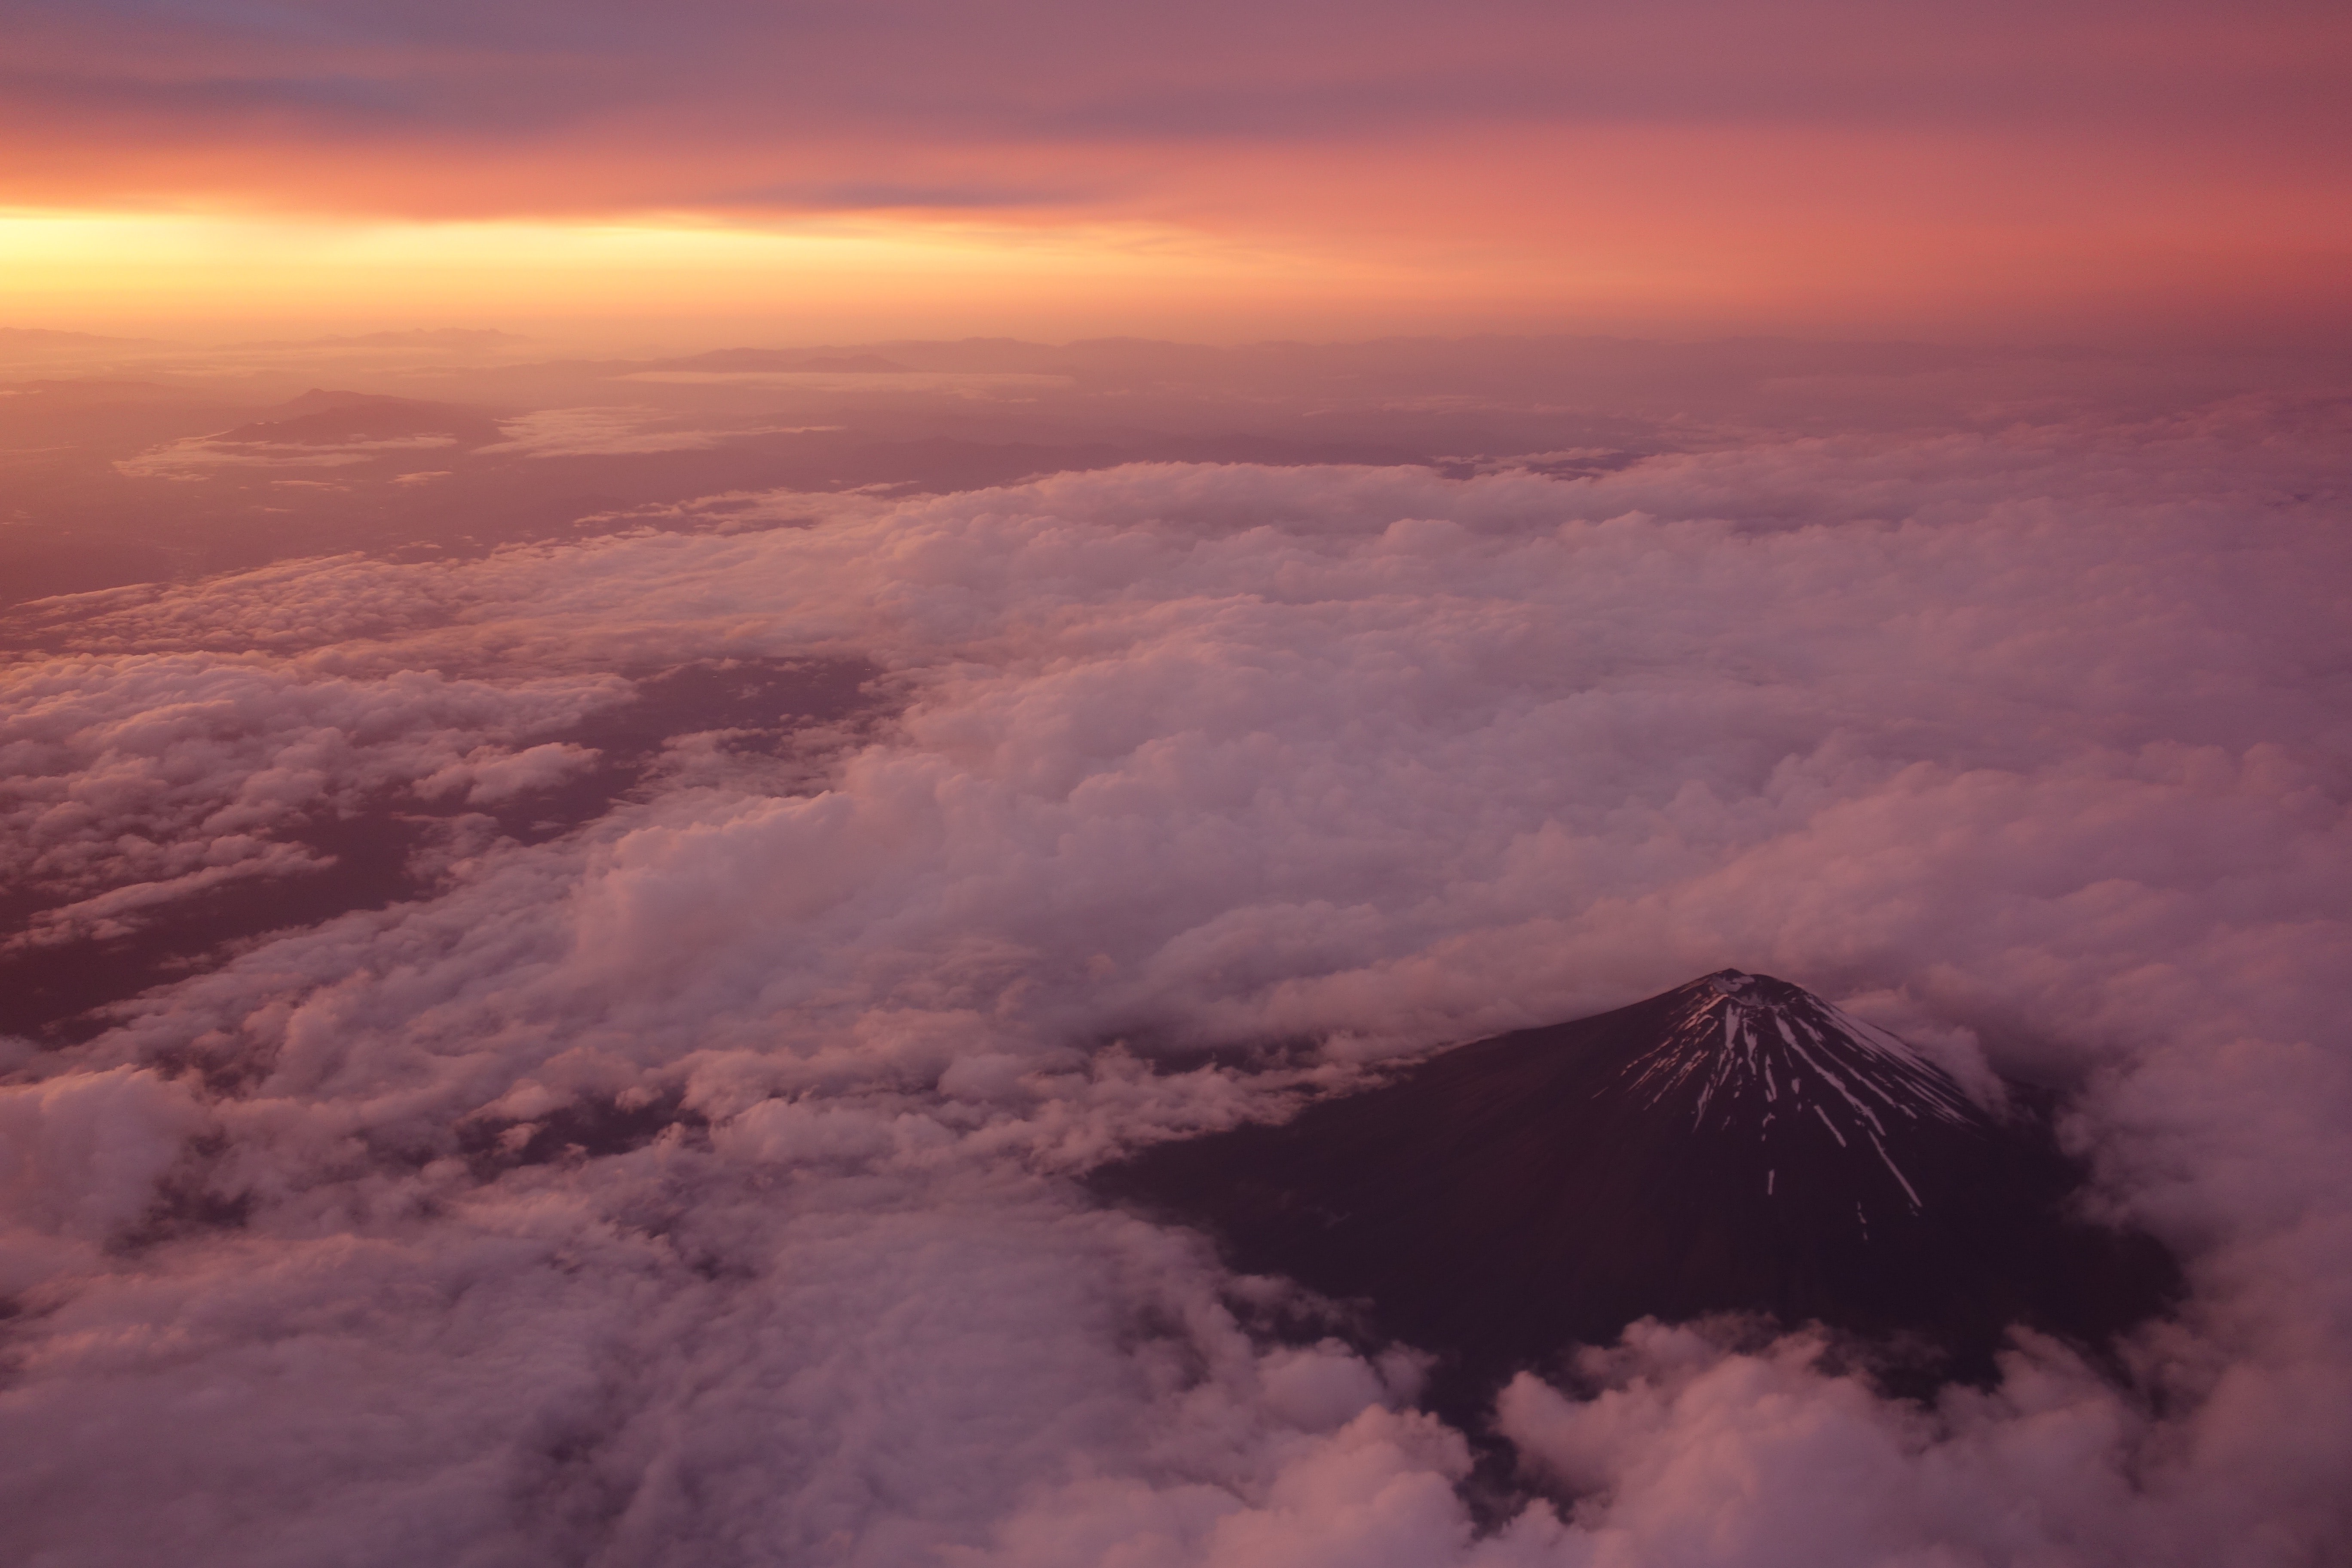 black mountain surrounded with clouds at golden hour